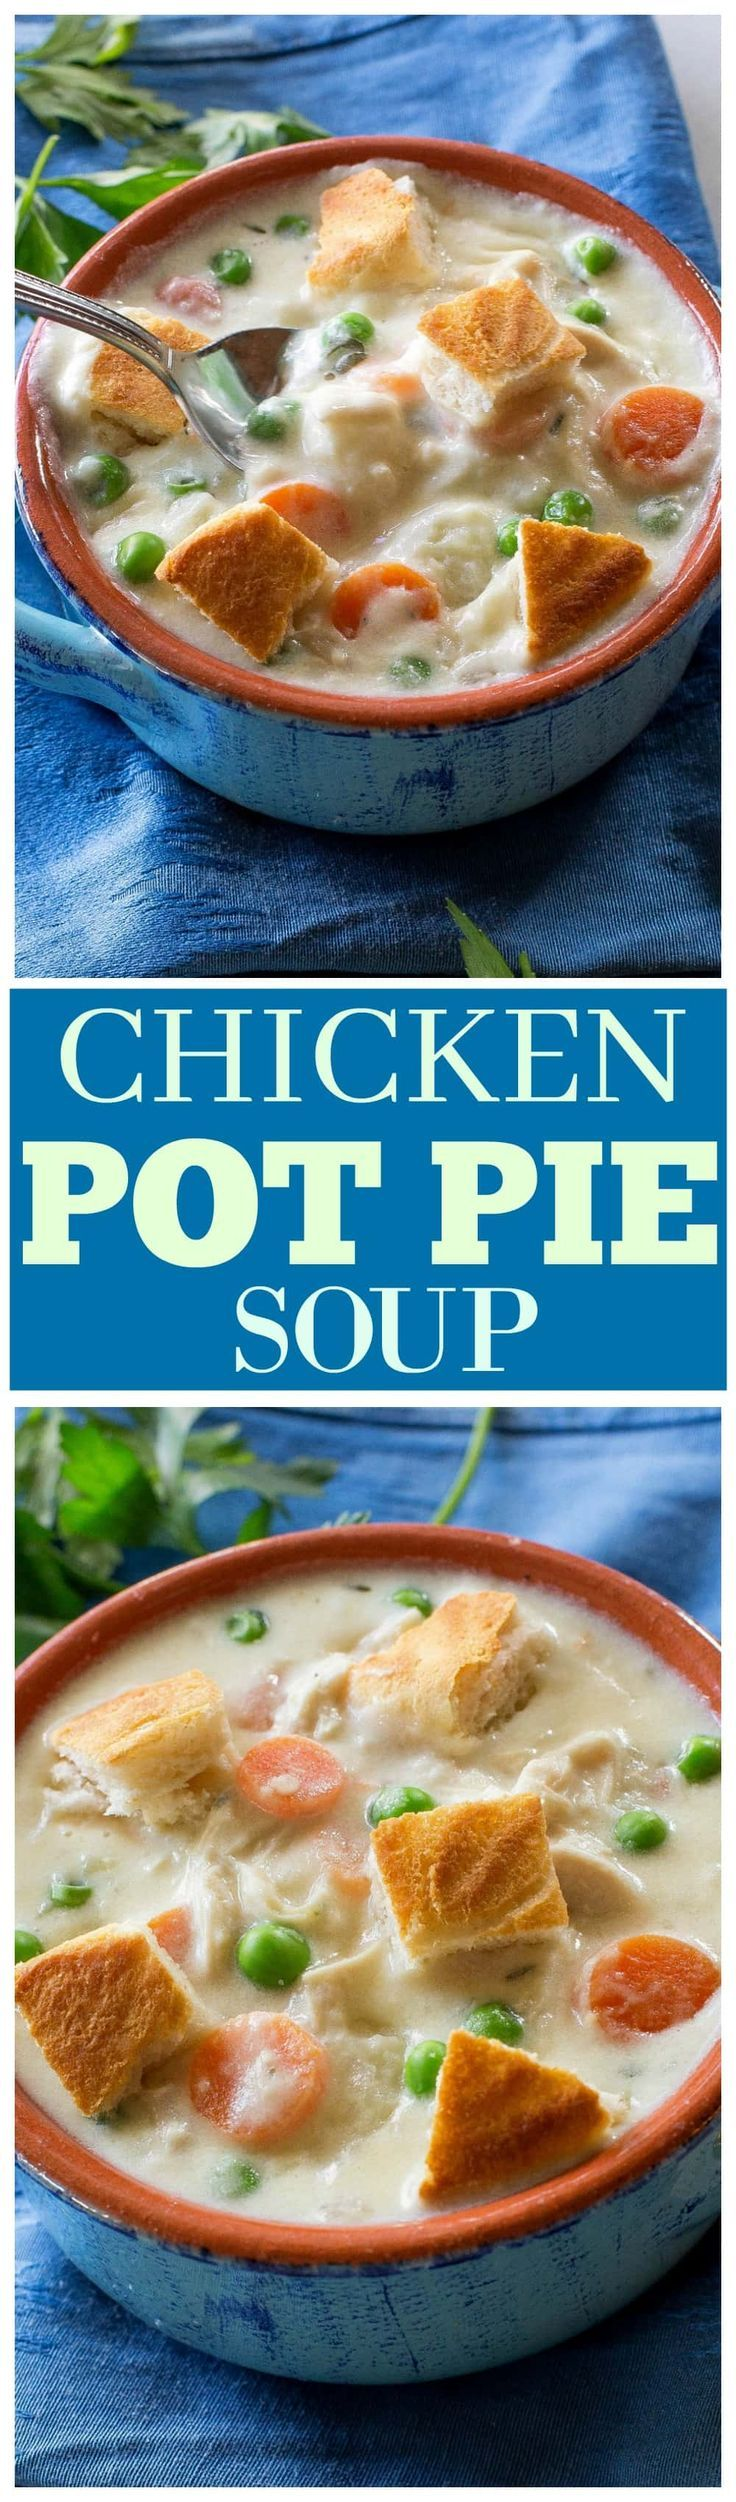 Chicken Pot Pie Soup - creamy pot pie soup with carrots, peas and potatoes. Seasoned to perfection! the-girl-who-ate-everything.com